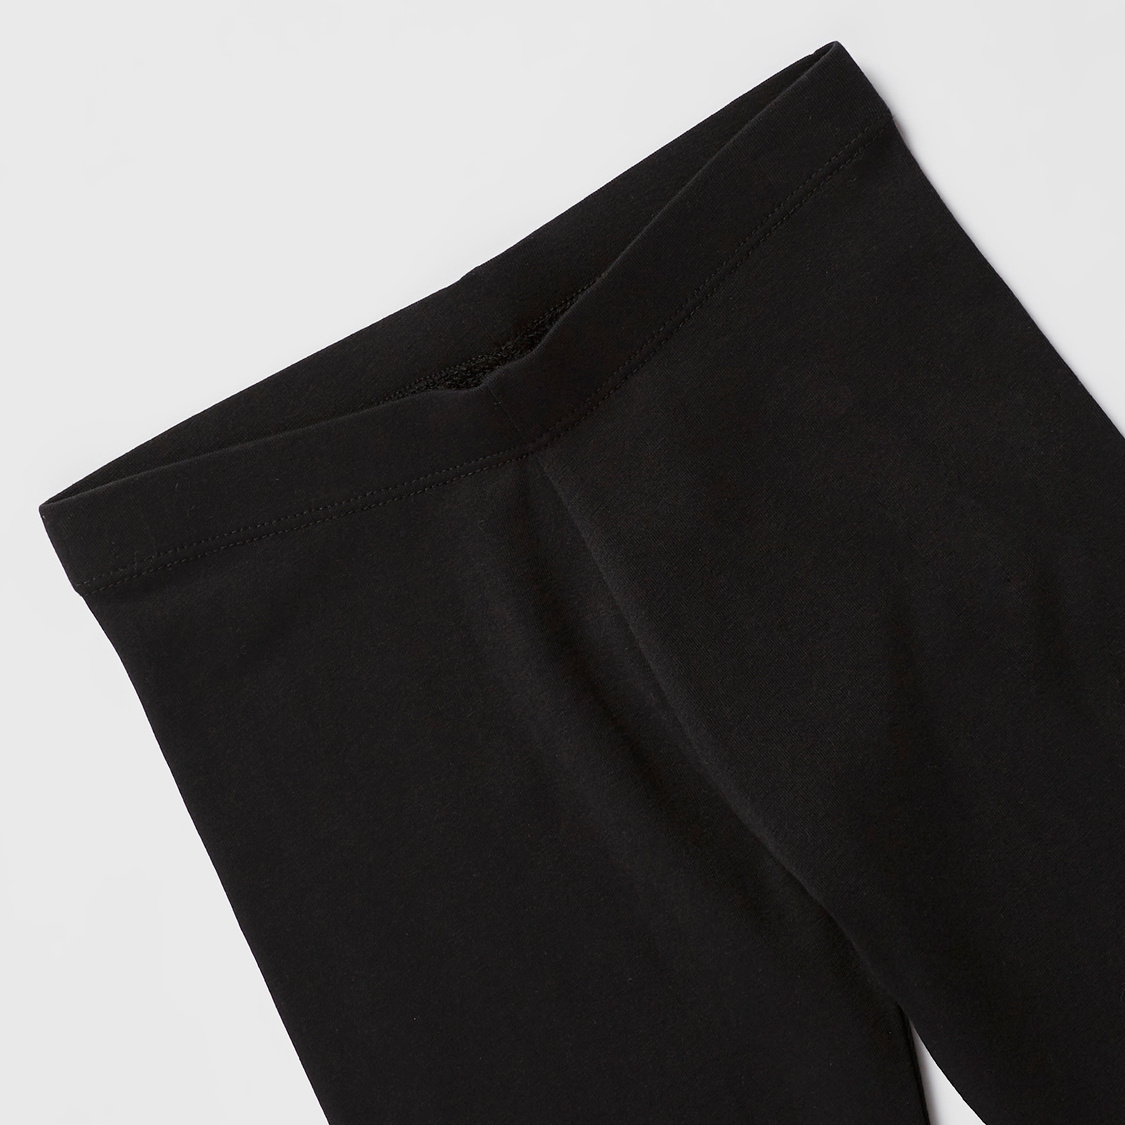 Solid Full Length Anti-Pilling Leggings with Lace Detail